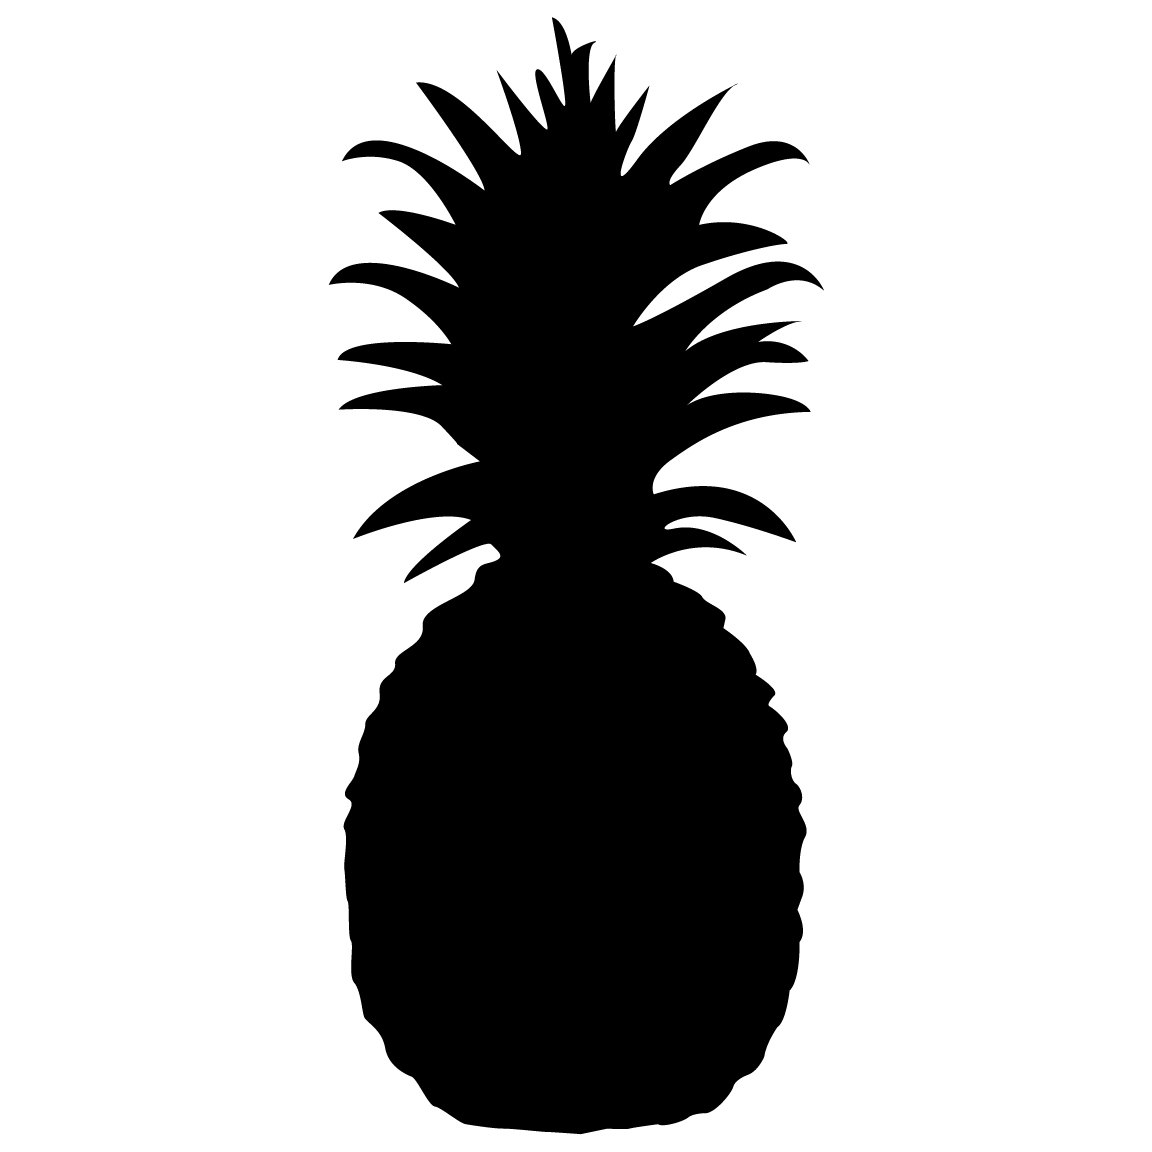 Pineapple Silhouette Clipart.